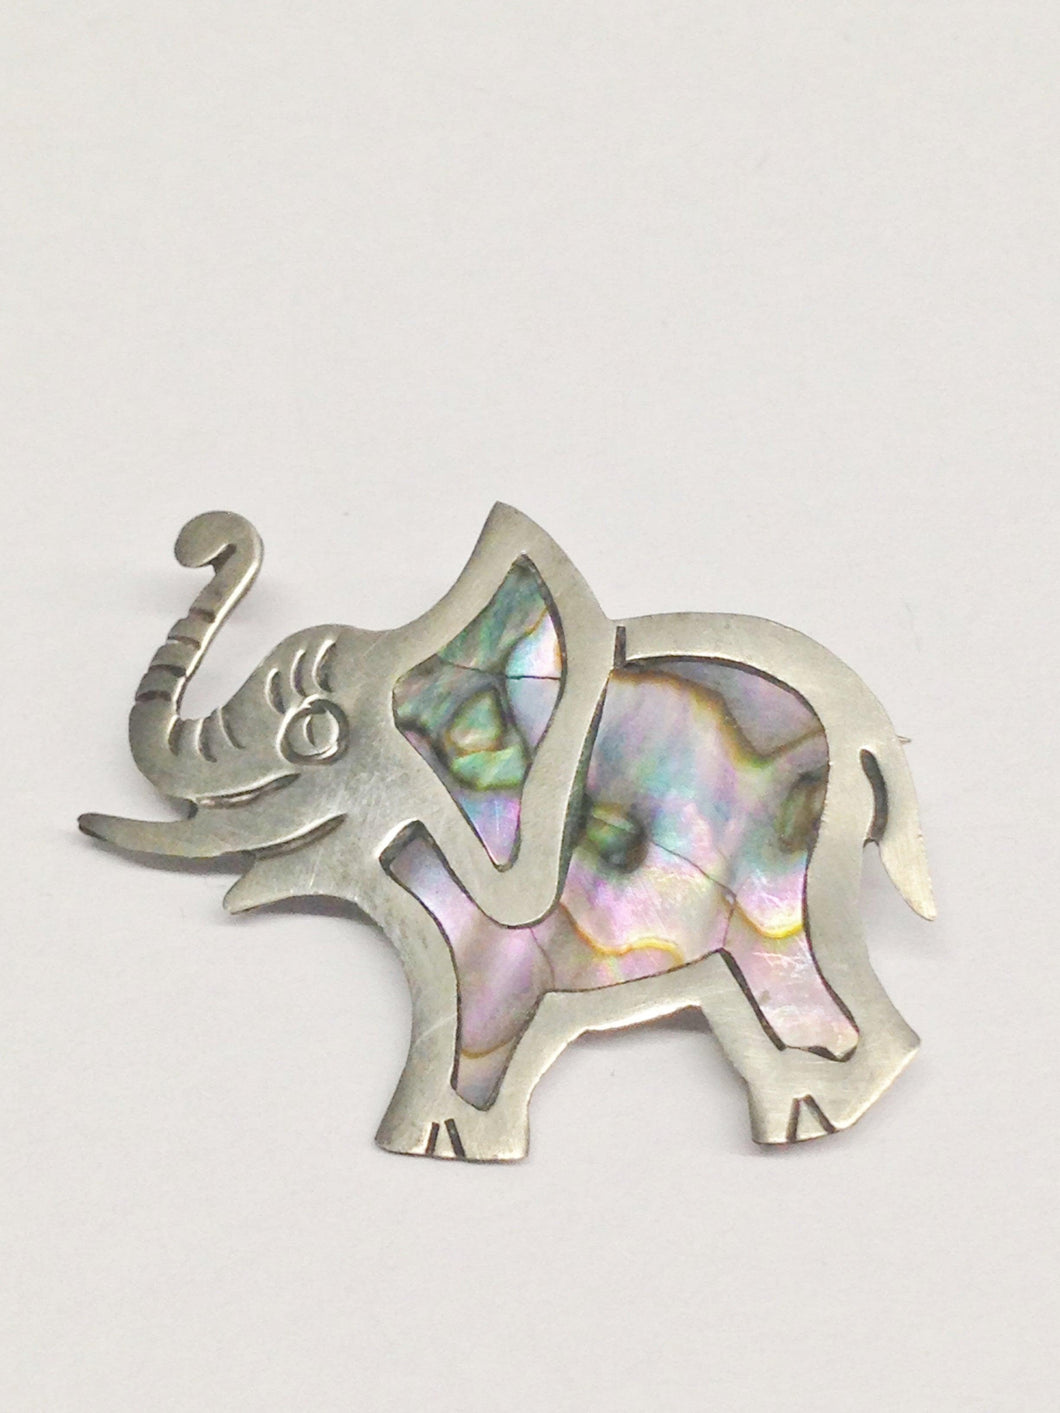 Sterling Silver Elephant Brooch Pin With Abalone Inlay